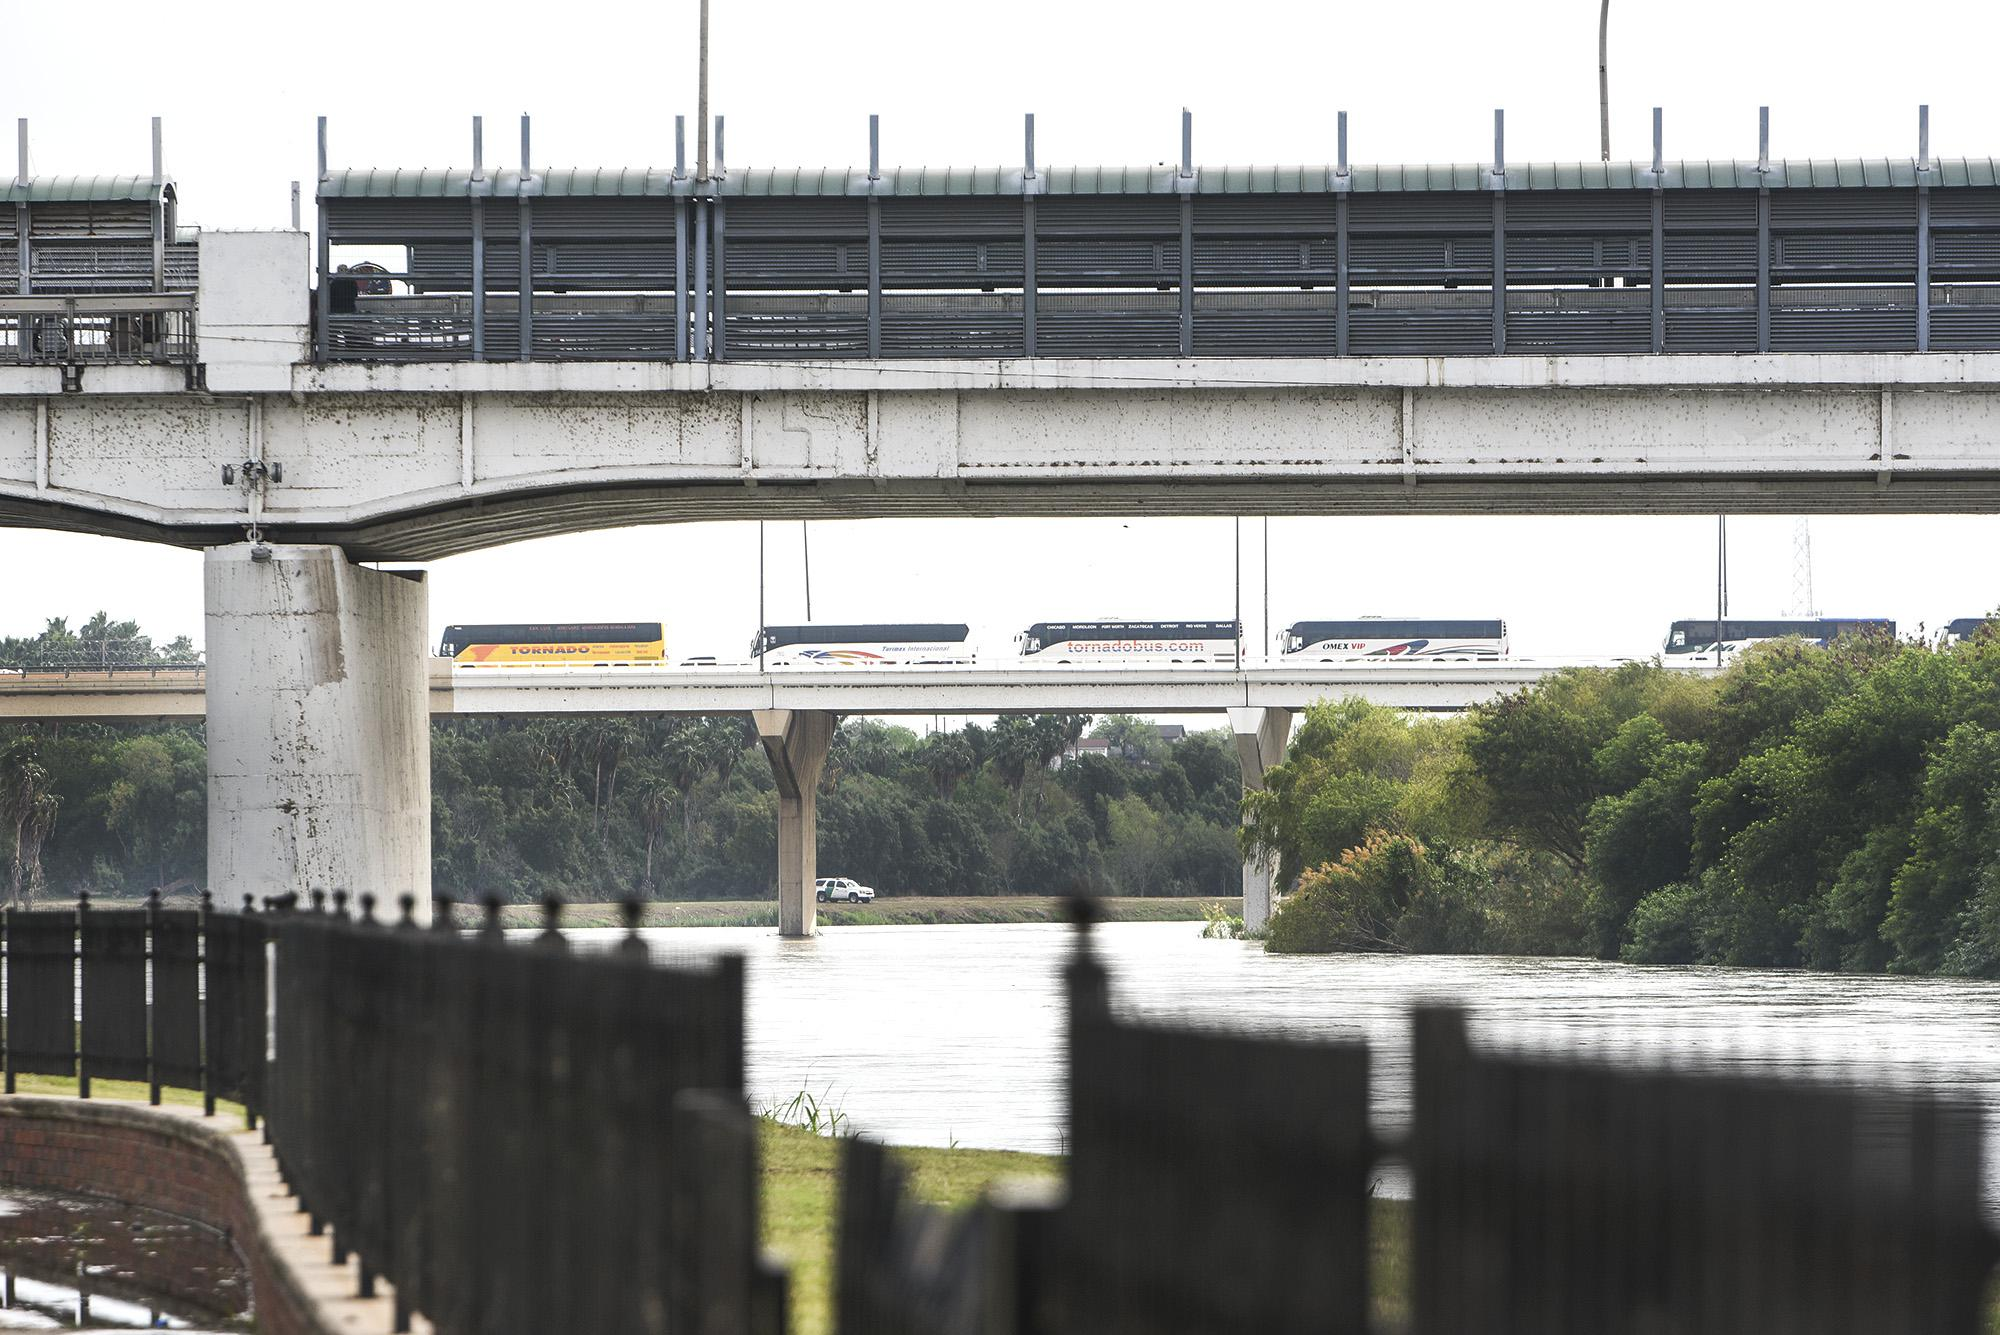 Laredo petitions federal government to open more northbound lanes at international bridges